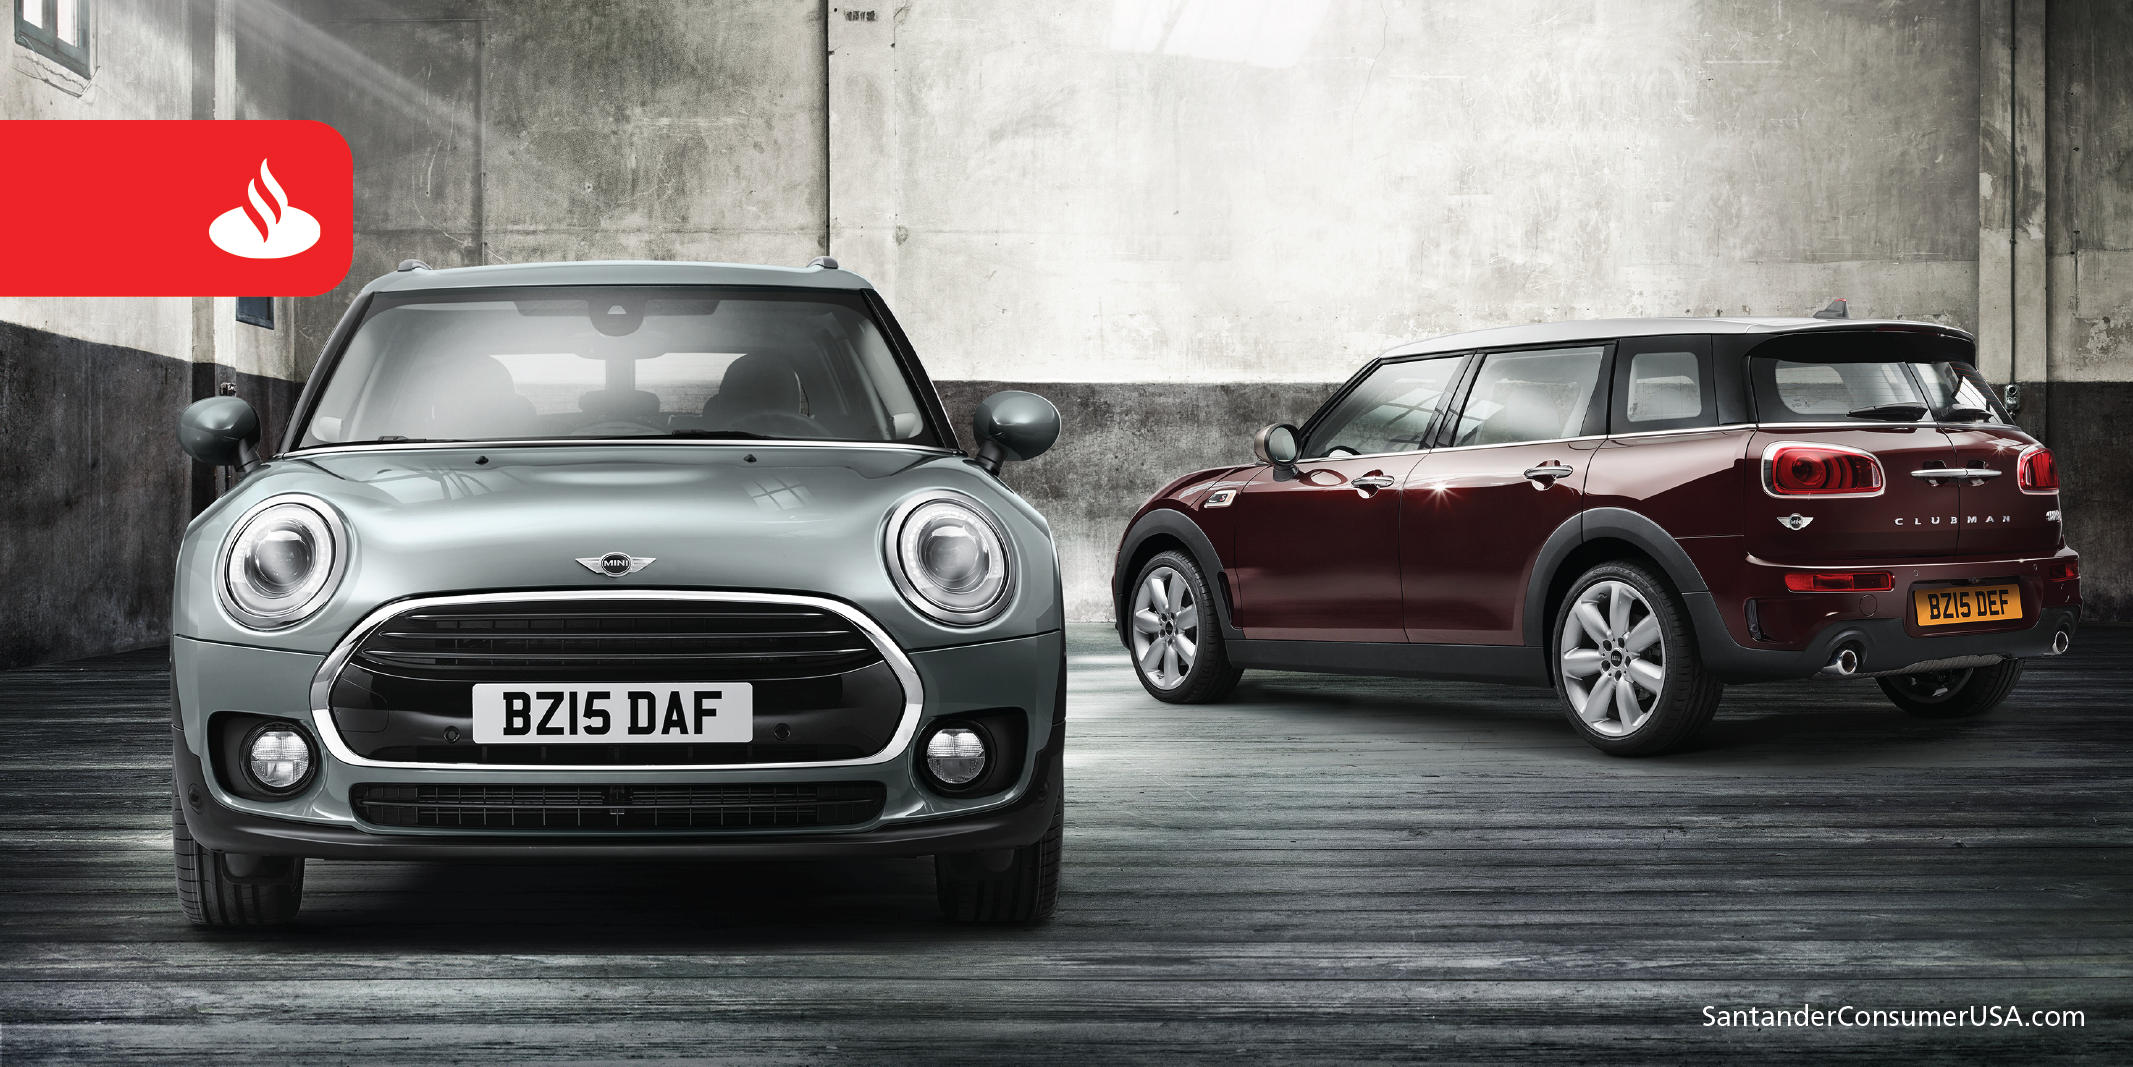 The Clubman boosted MINI into top three among non-premium vehicles.